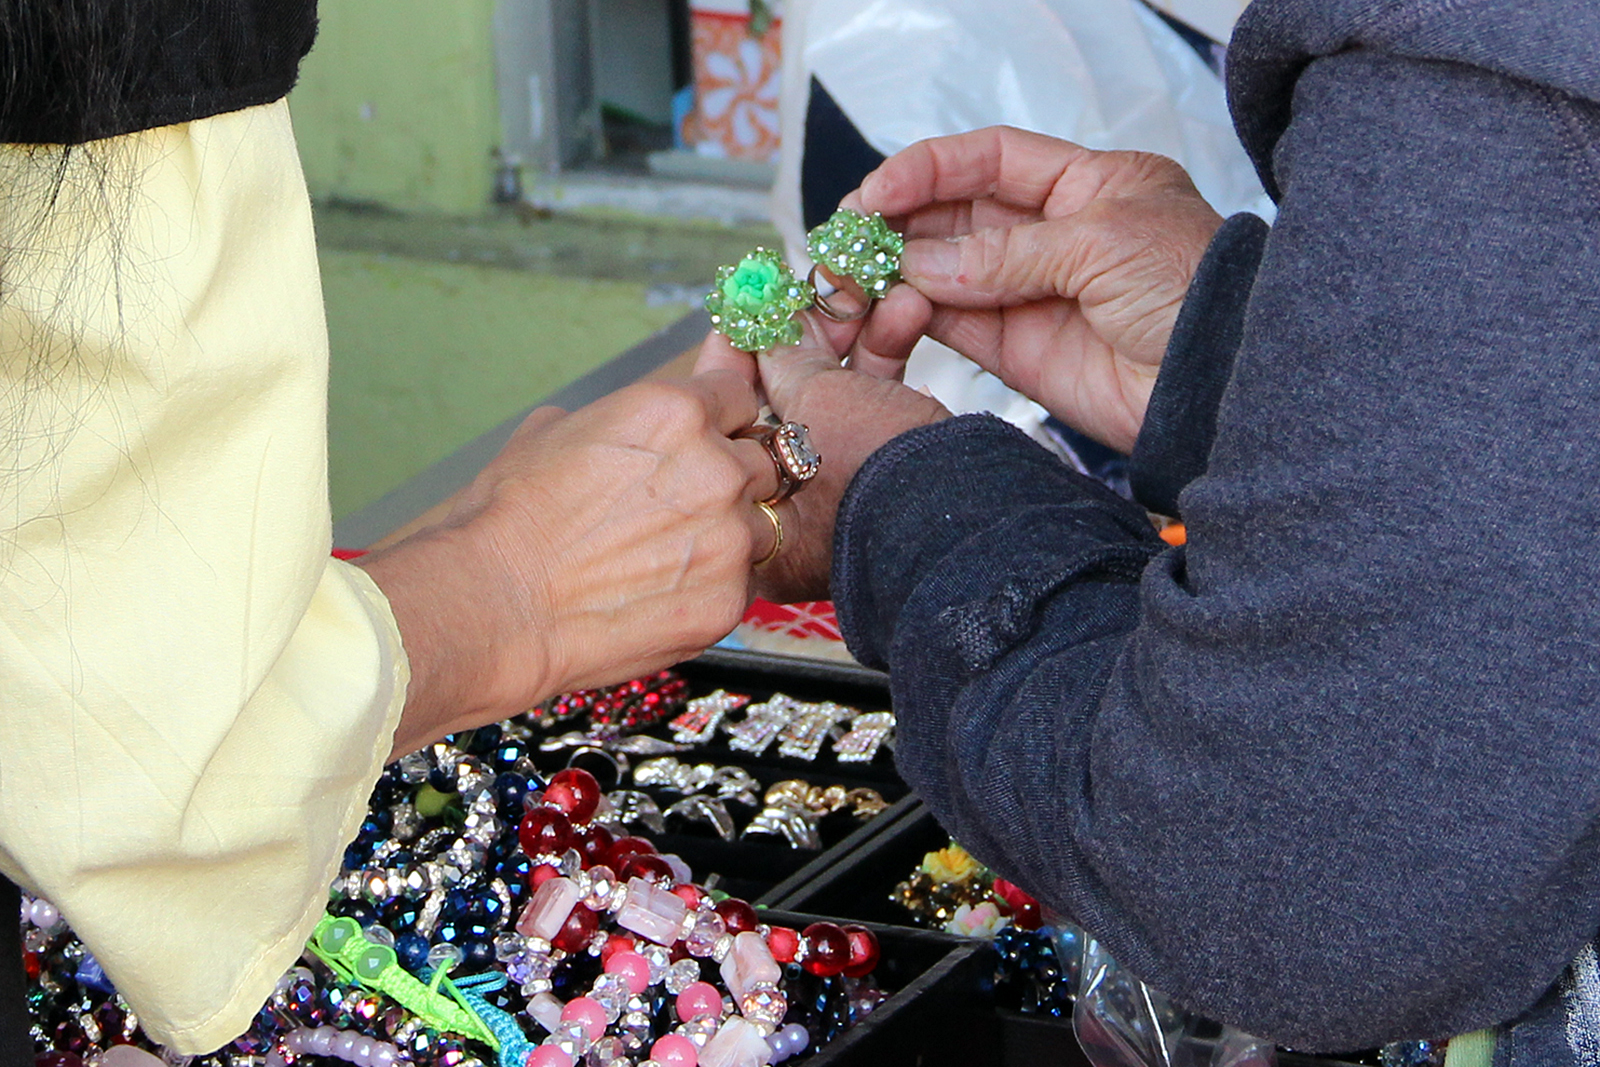 A woman shops for rings on Mission Street.